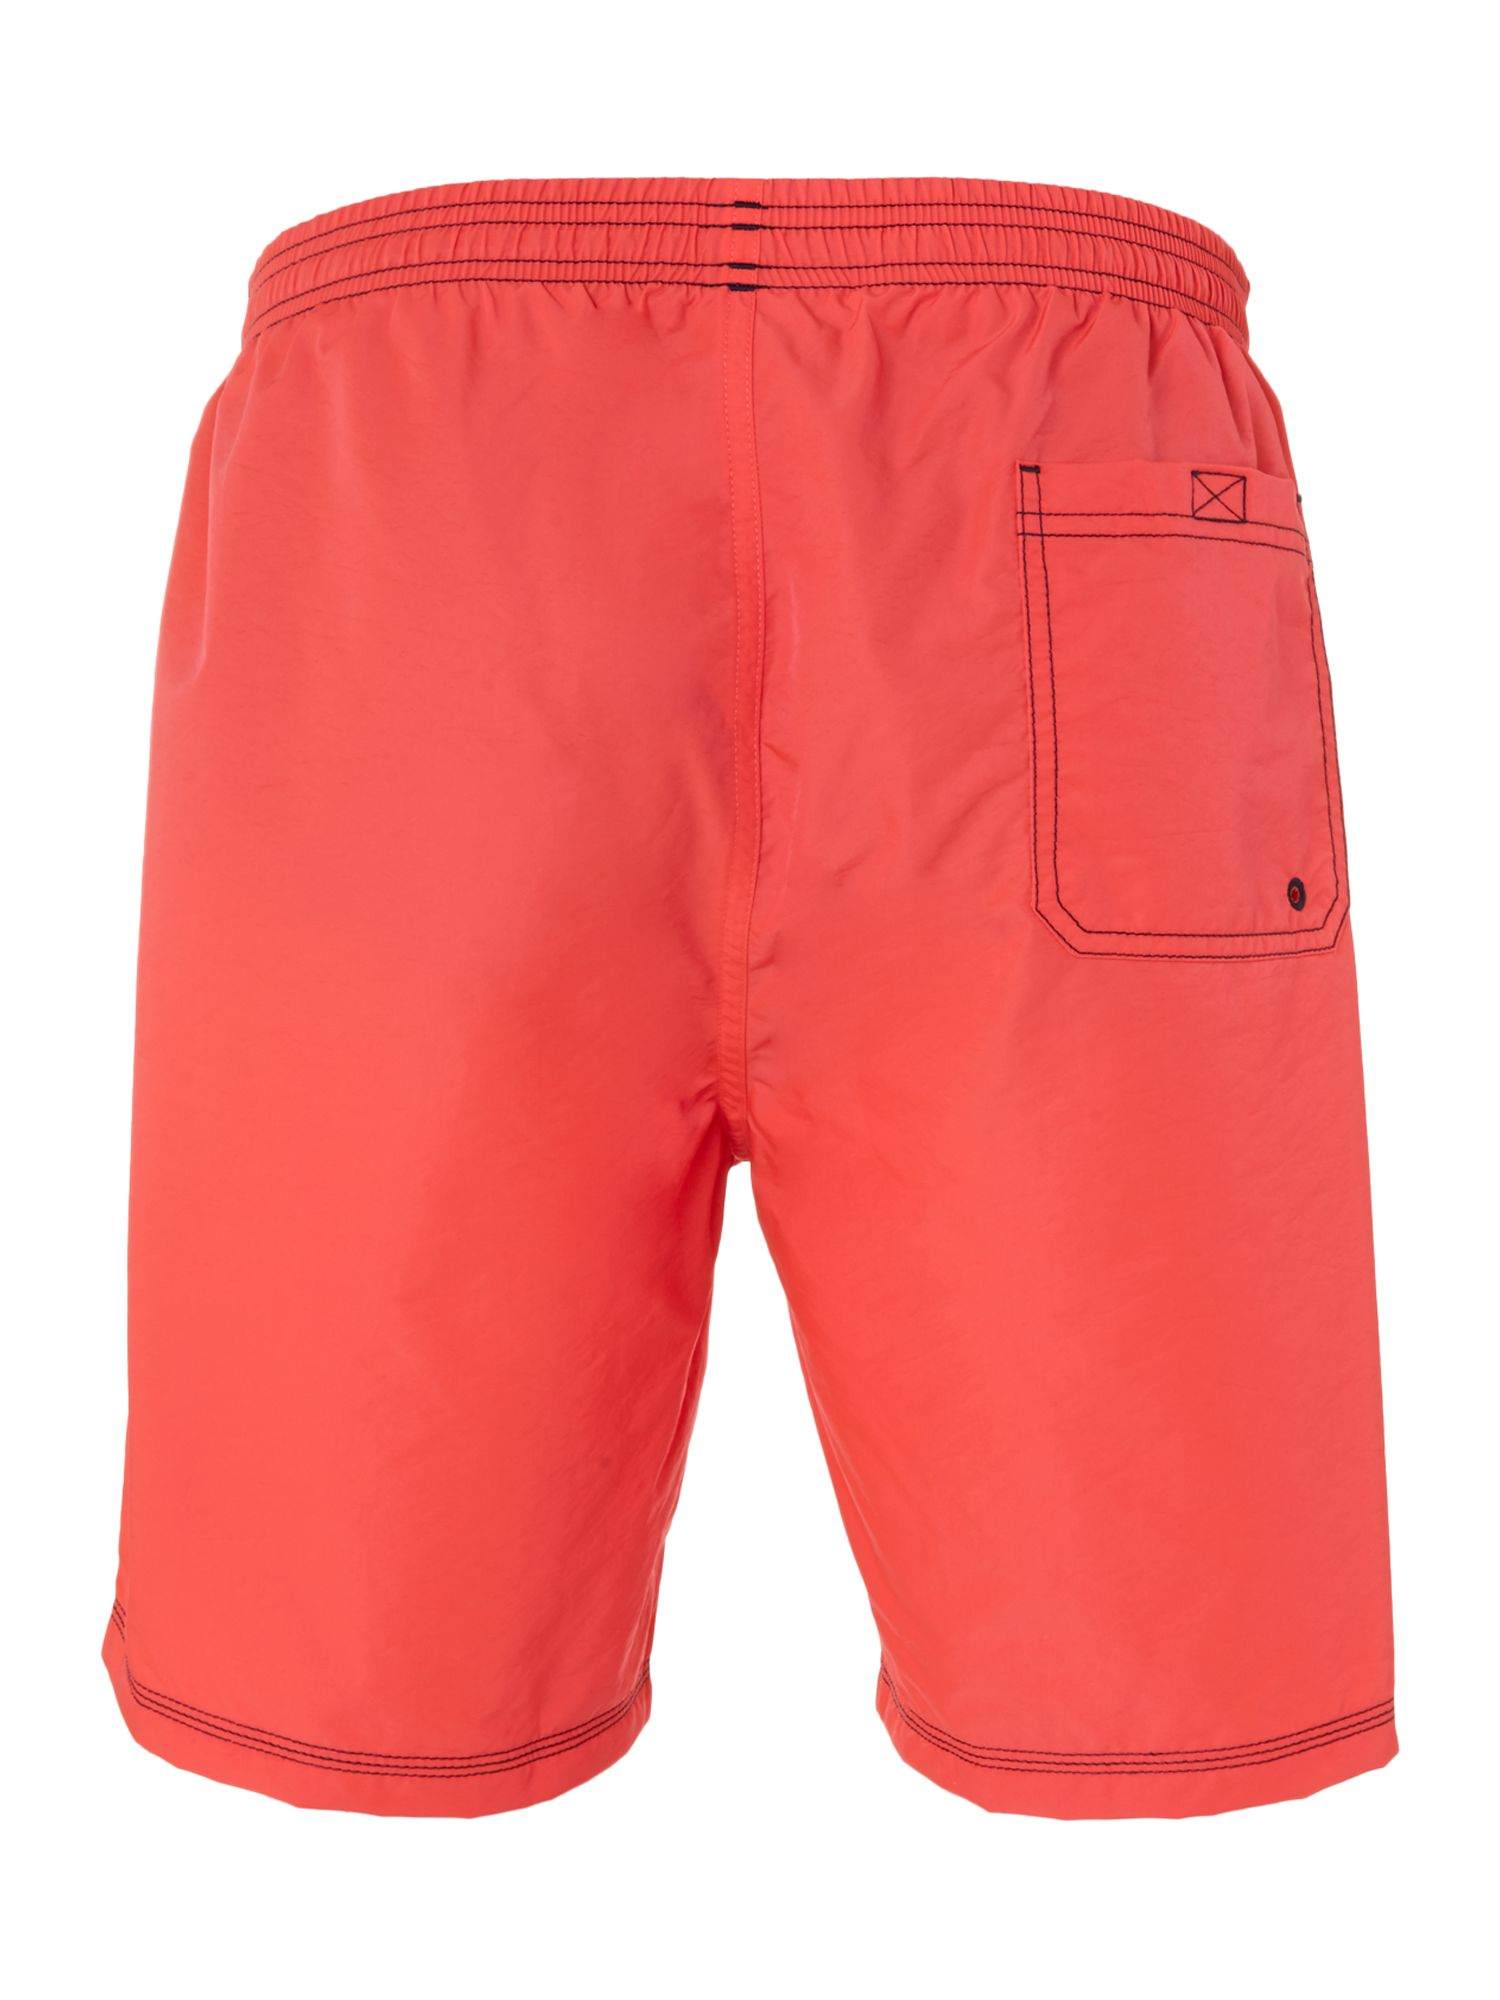 Killfish swim trunk